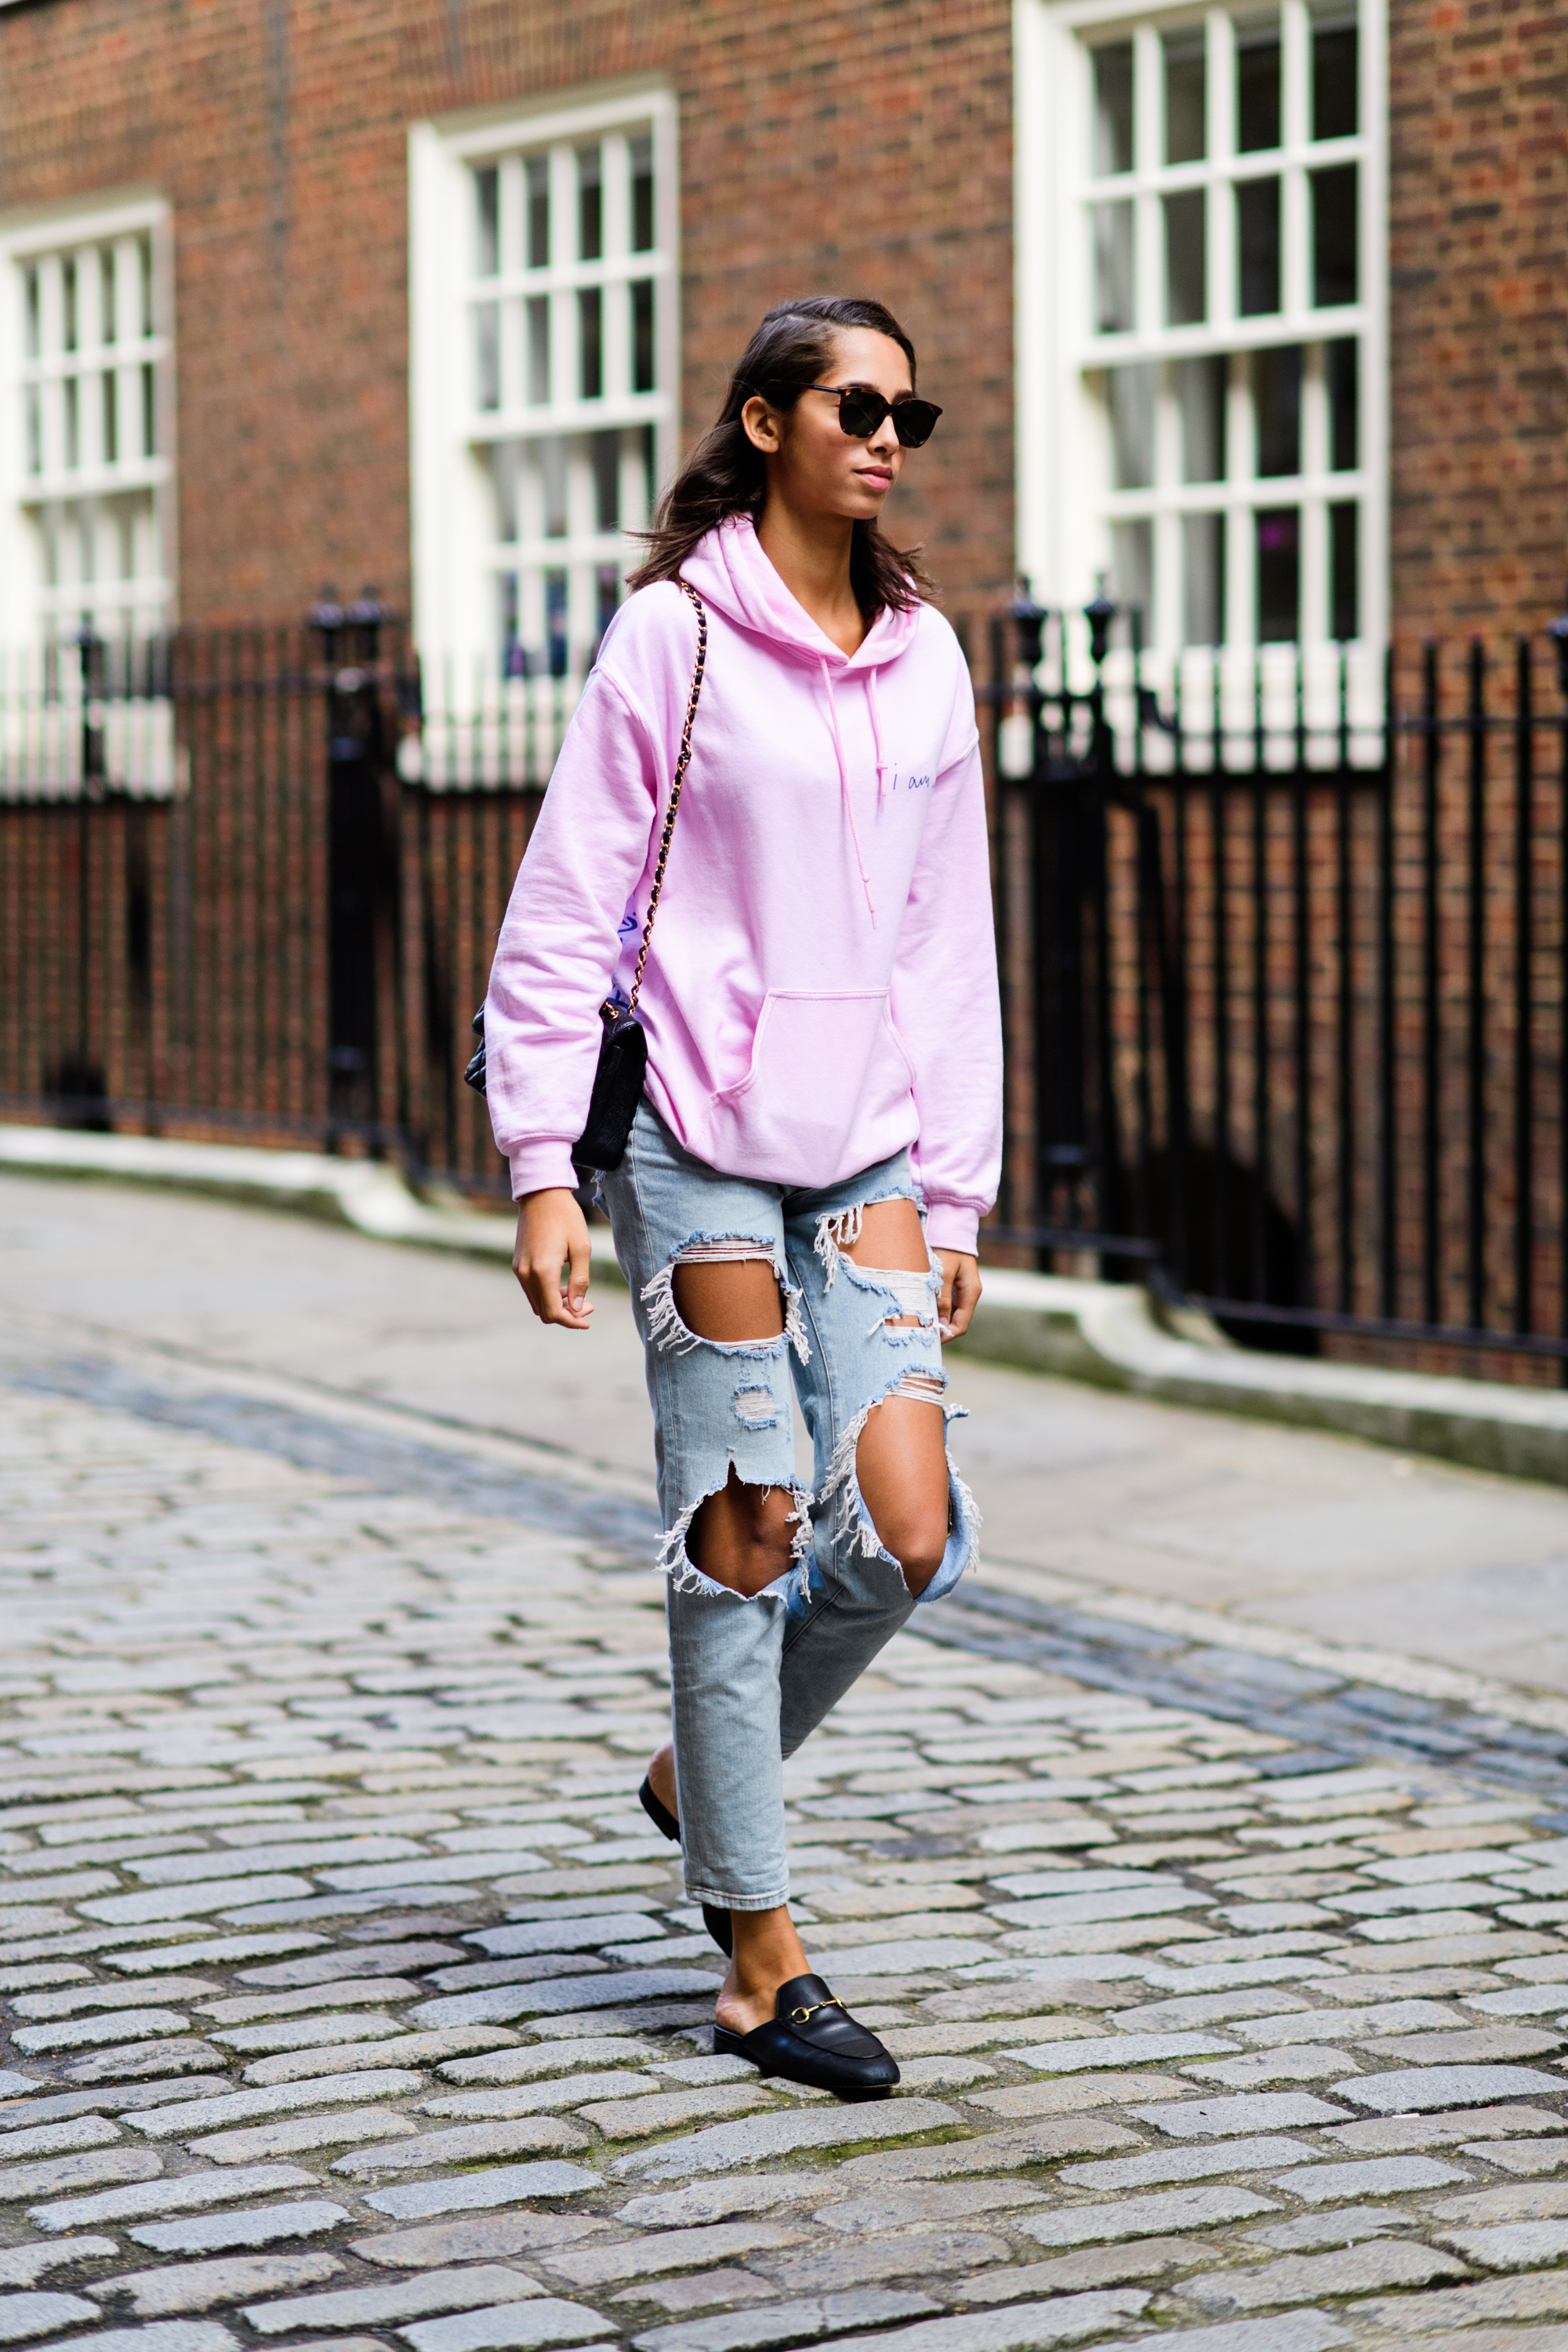 london-lfw-street-style-ss18-day-1-tyler-joe-128-1505753311